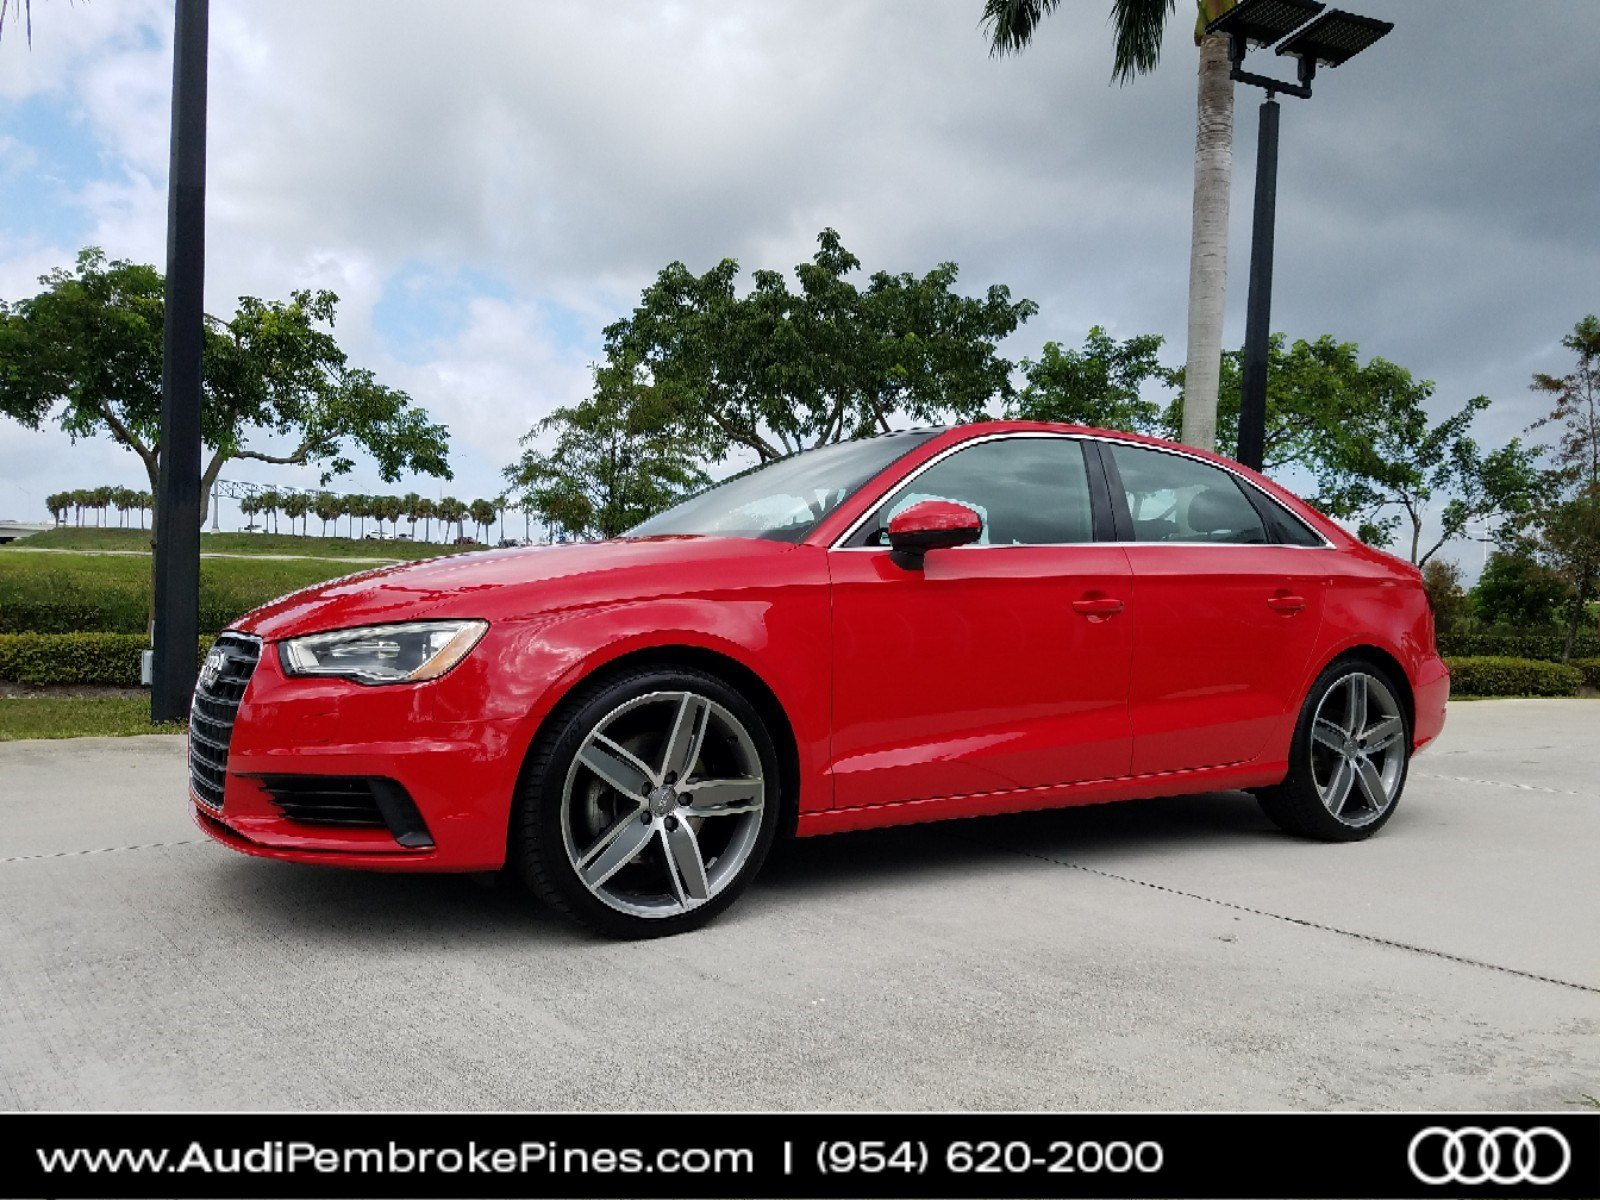 Pre Owned 2015 Audi A3 2 0T Premium Plus 4dr Car in Fort Lauderdale